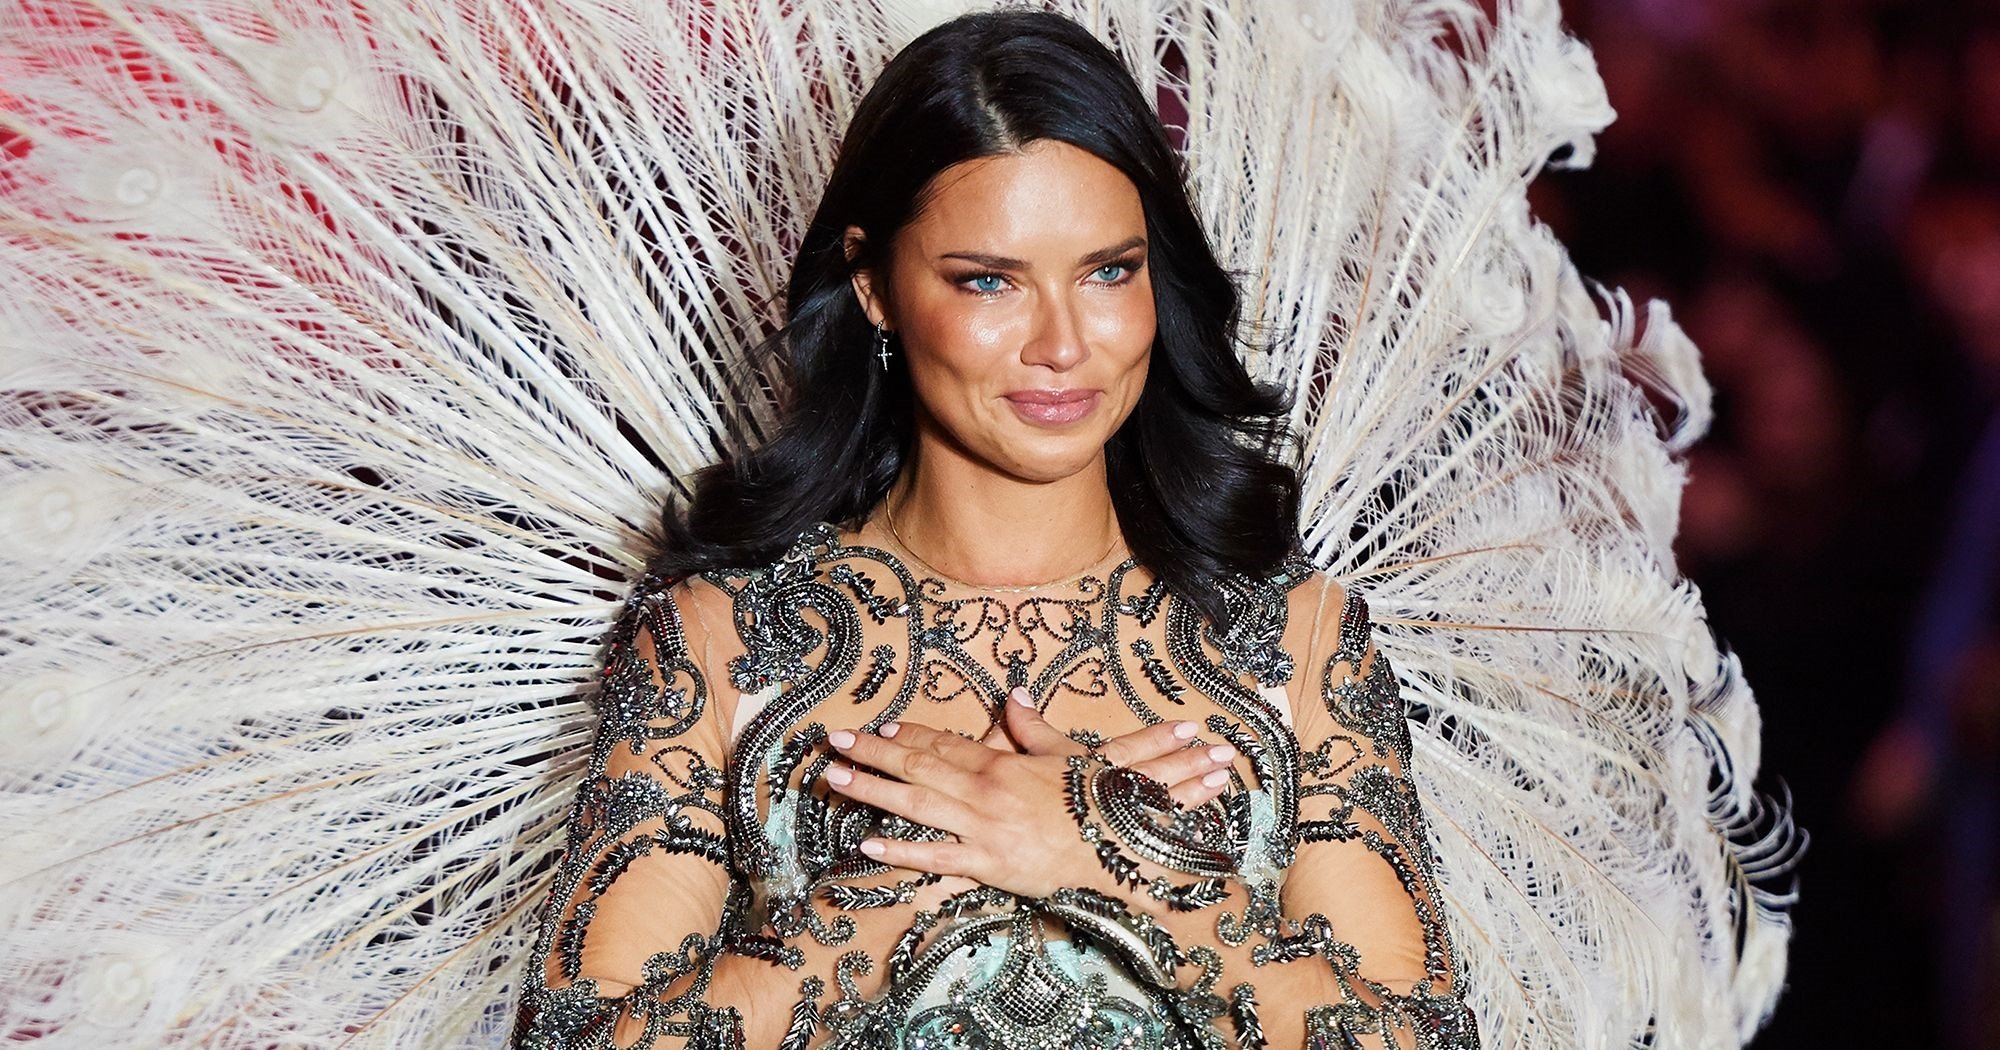 What Hairstyles Were Outstanding At The Victoria's Secret Fashion Show 2018